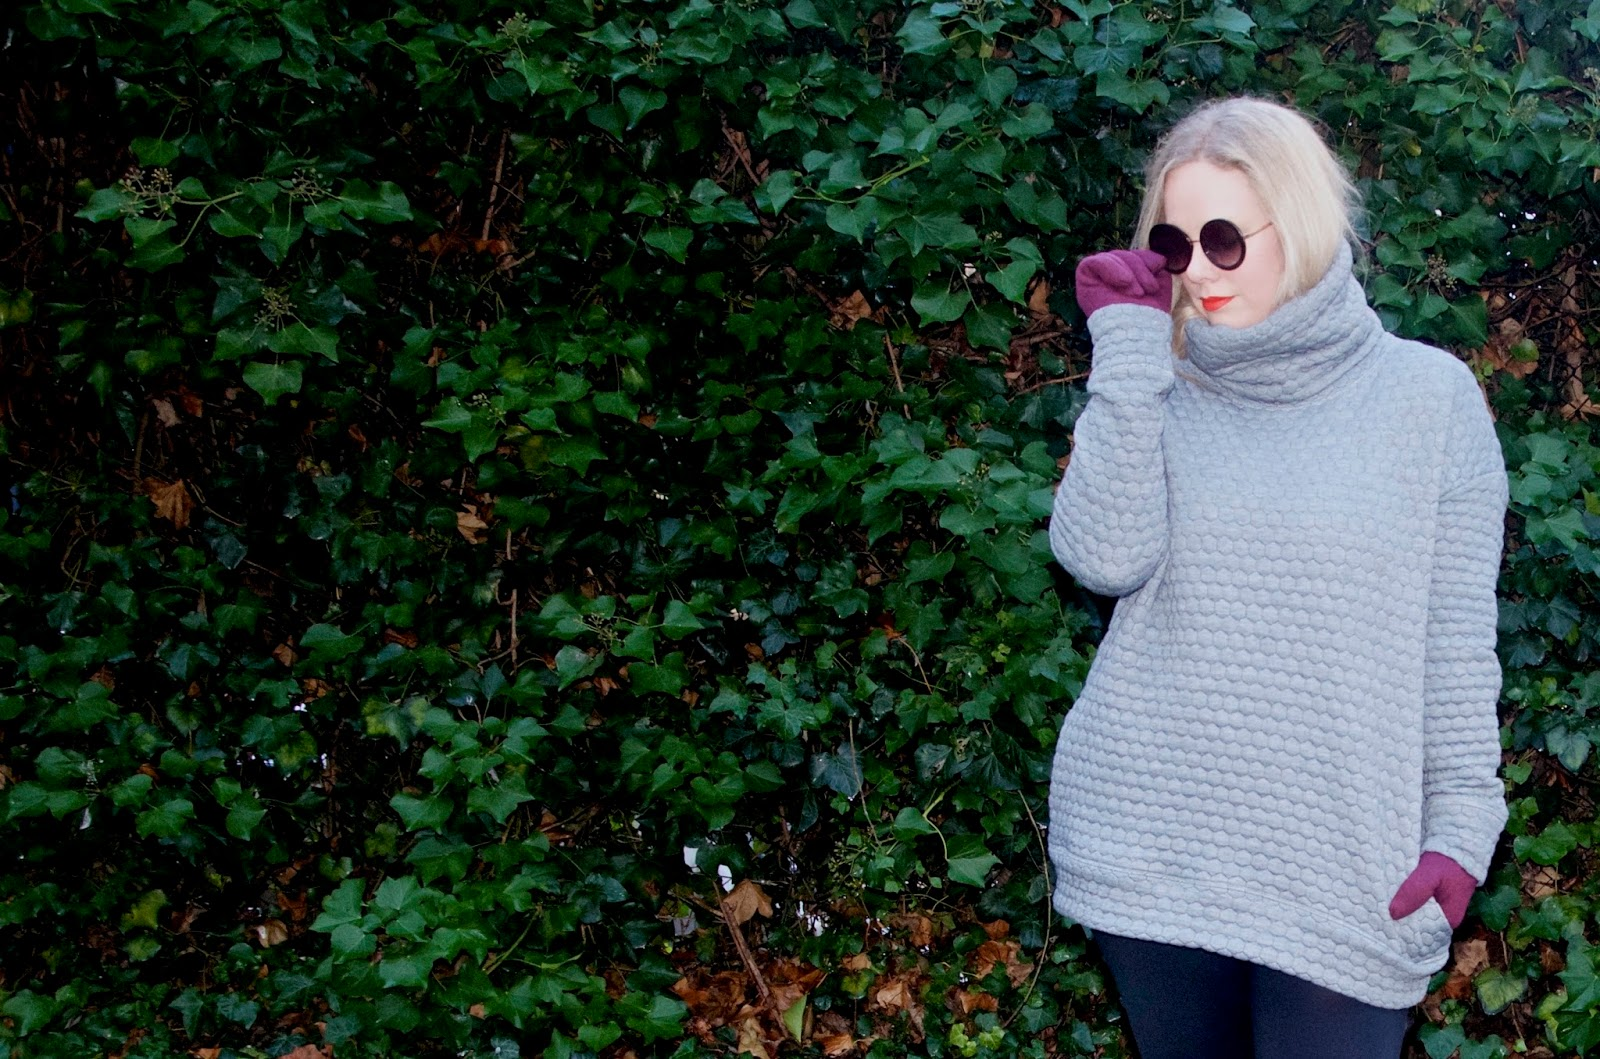 quilted jumper, round sunglasses, leggings, red lips and cranberry gloves